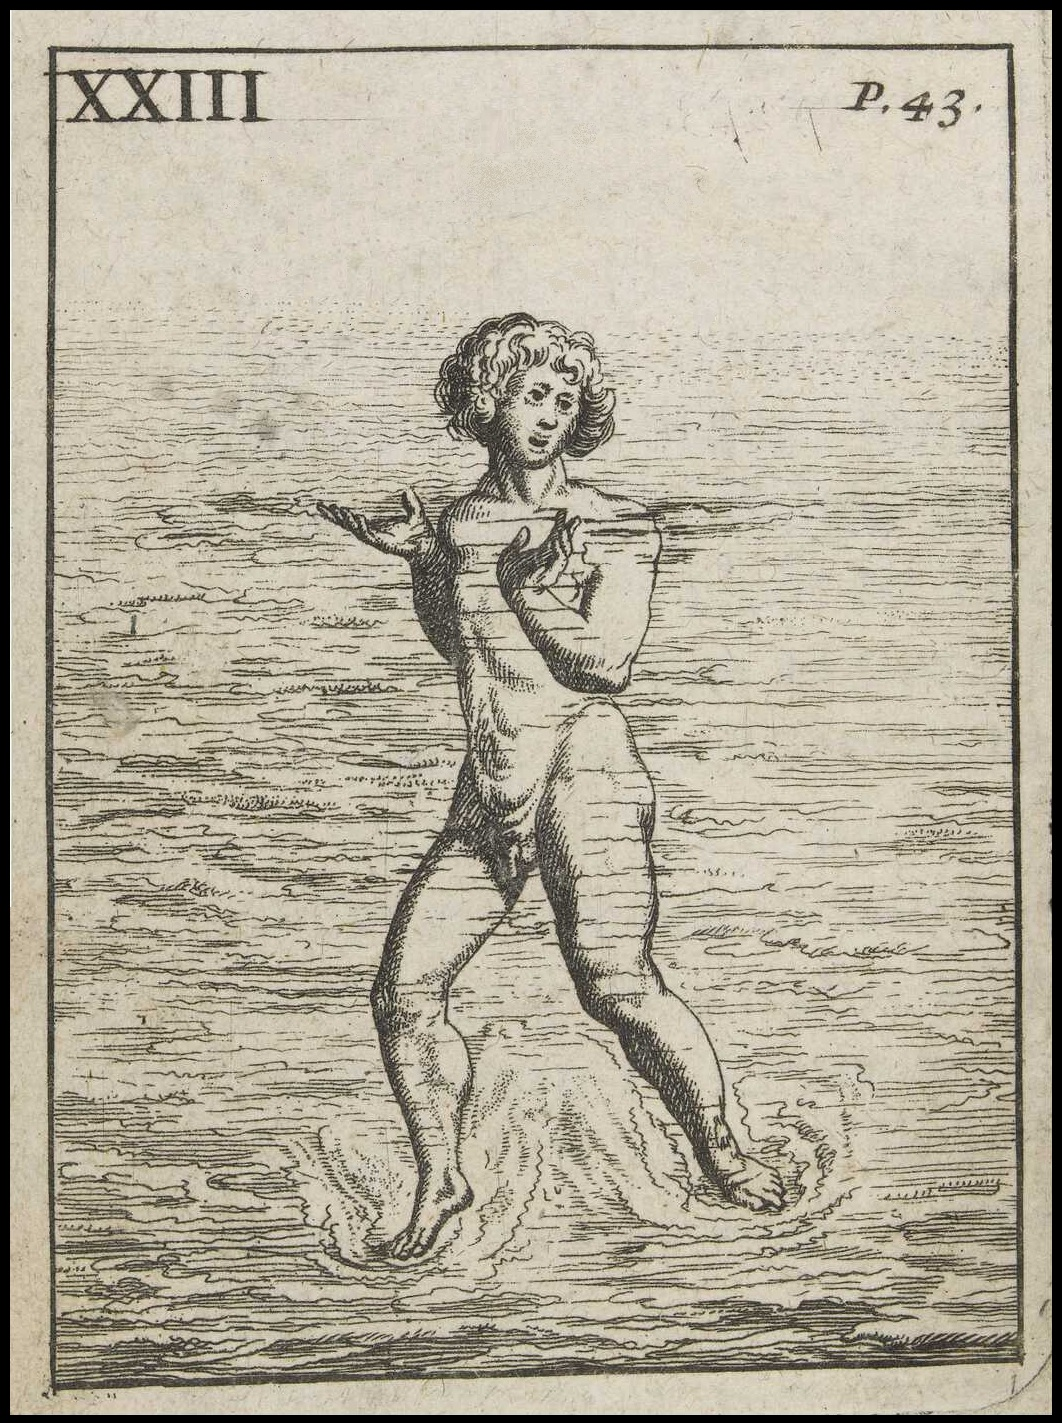 crude woodcut of swimmer treading water